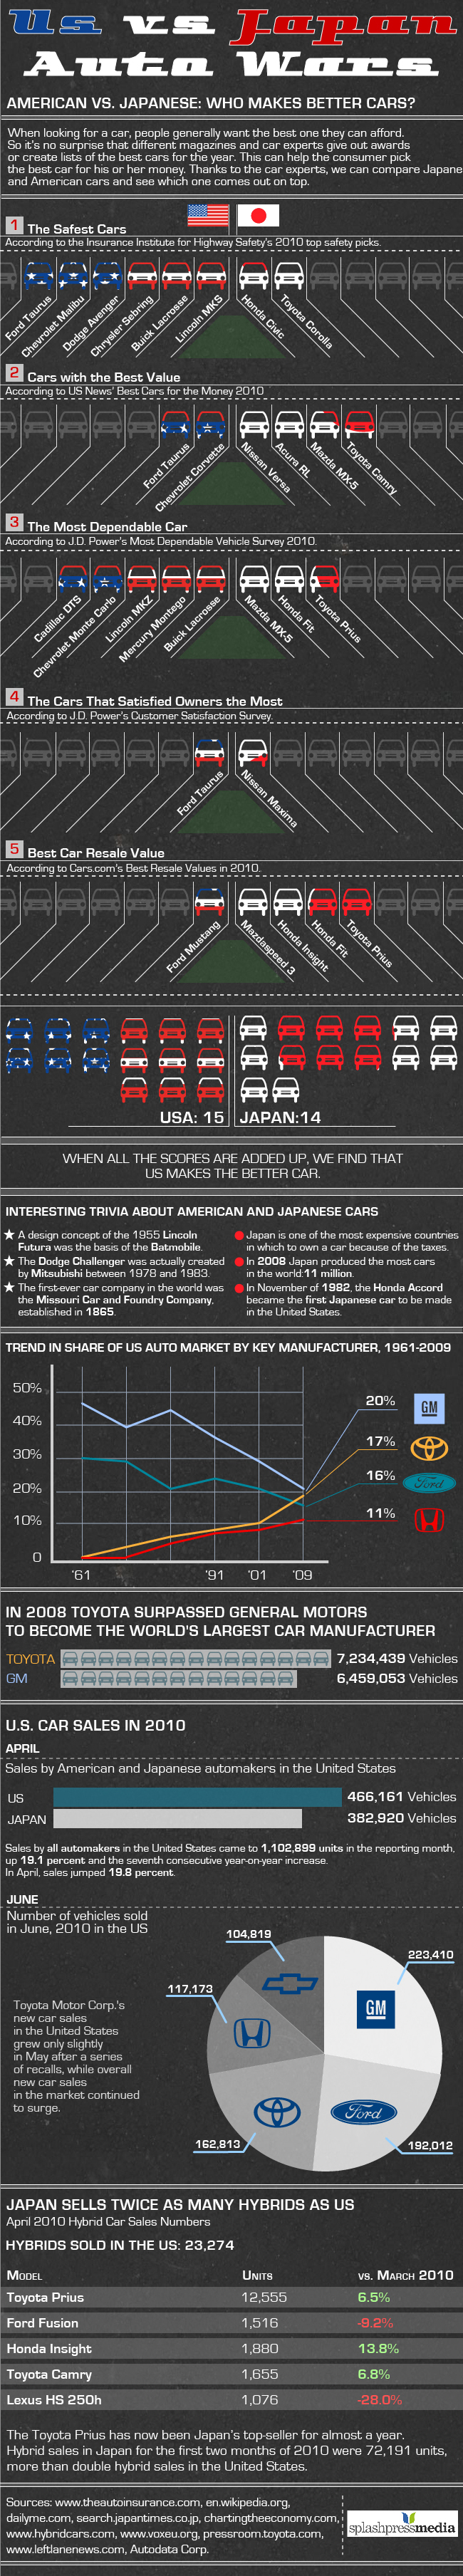 Auto Wars: US vs Japanese Car Industry